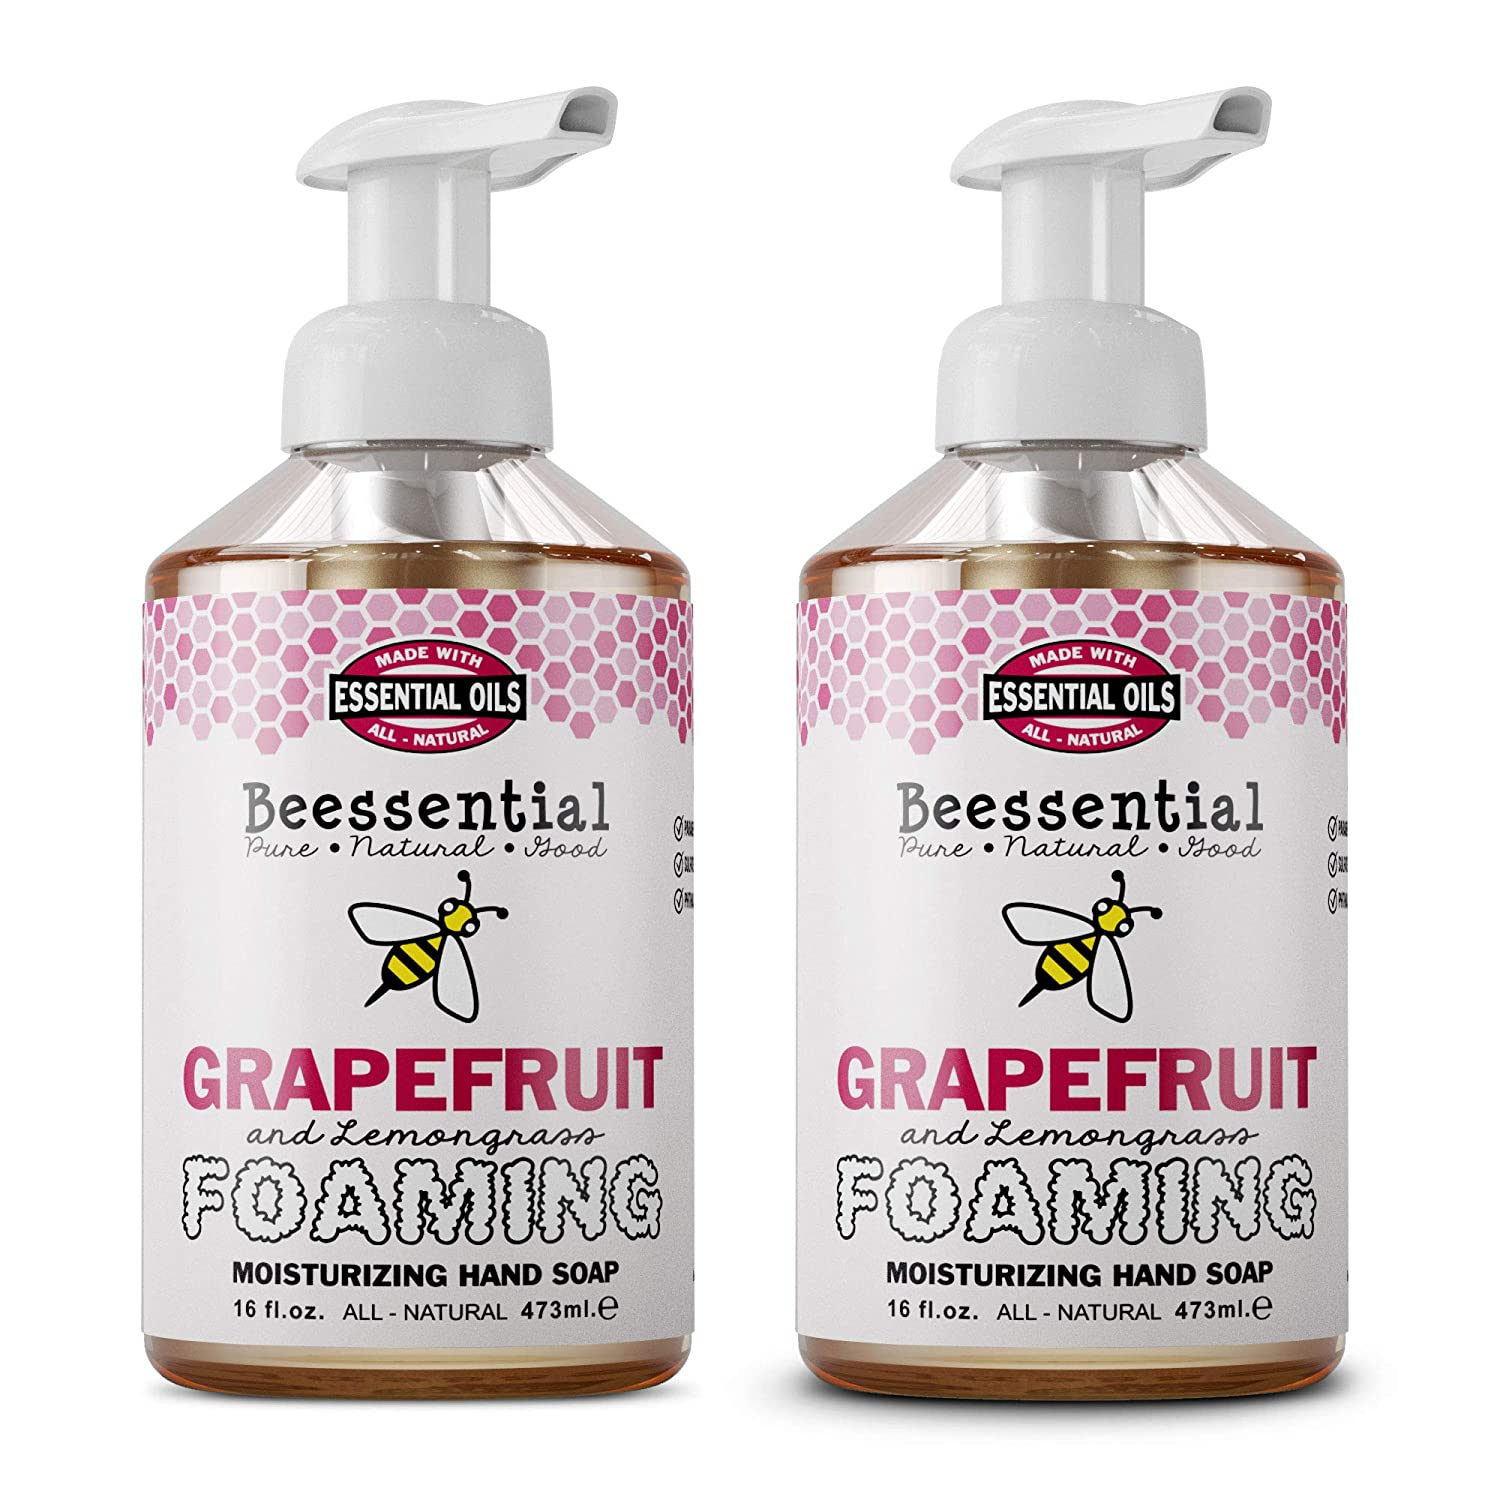 Beessential Foaming Hand Soap 2 Pack, Grapefruit And Lemongrass, 32 Ounce